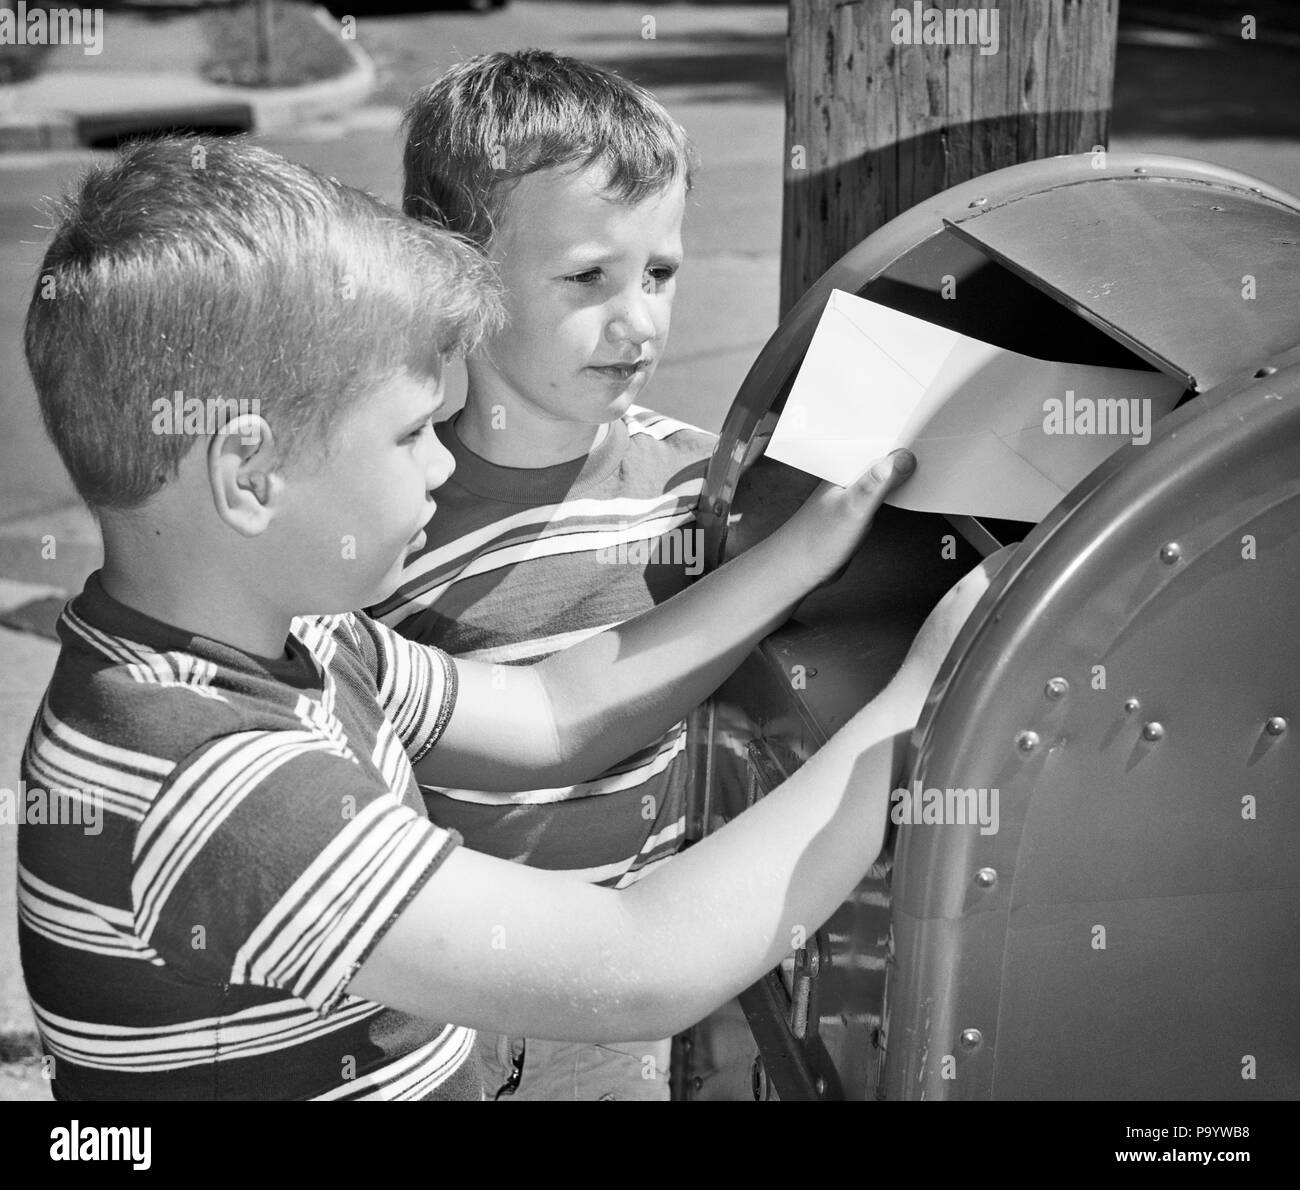 1960s 1970s TWO BOYS MAILING LETTER IN MAILBOX - p7771 HAR001 HARS HAR001 OLD FASHIONED - Stock Image